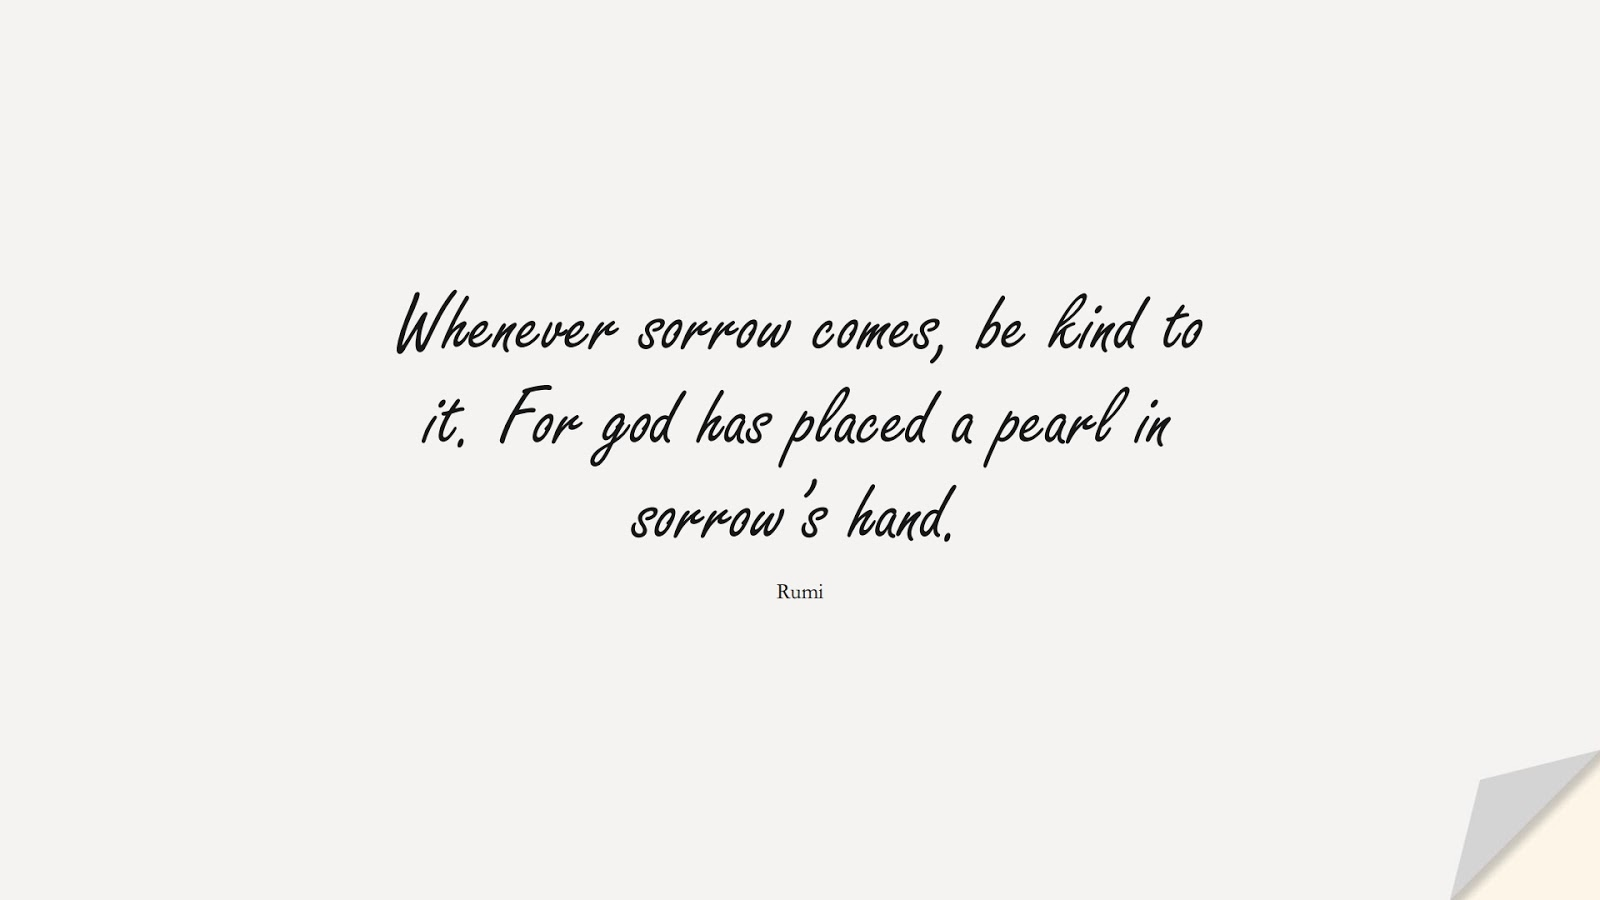 Whenever sorrow comes, be kind to it. For god has placed a pearl in sorrow's hand. (Rumi);  #RumiQuotes